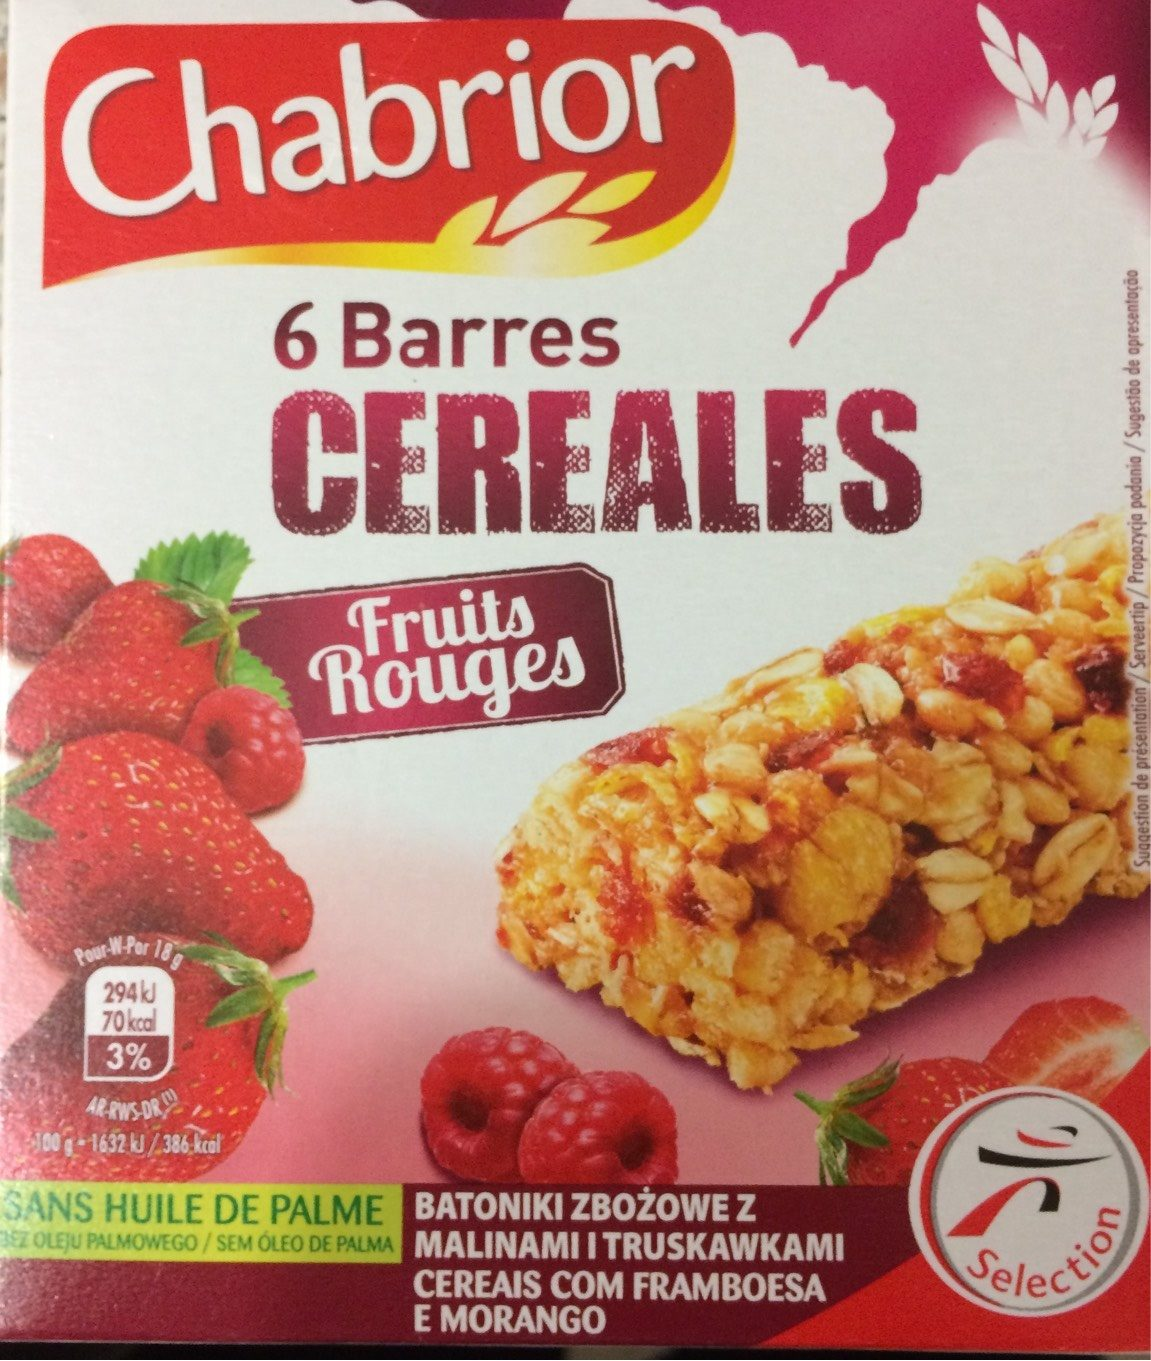 Chabrior 6 barres cereales - Product - fr